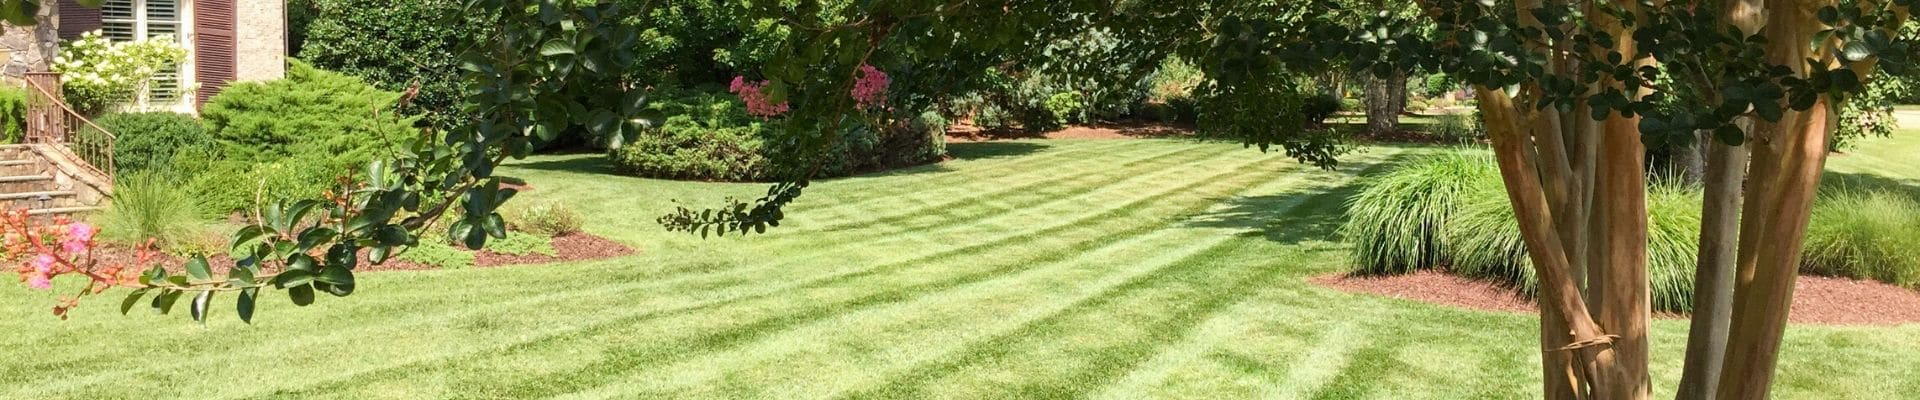 Professionally mowed grass with stripes in it and lots of landscaping beds.